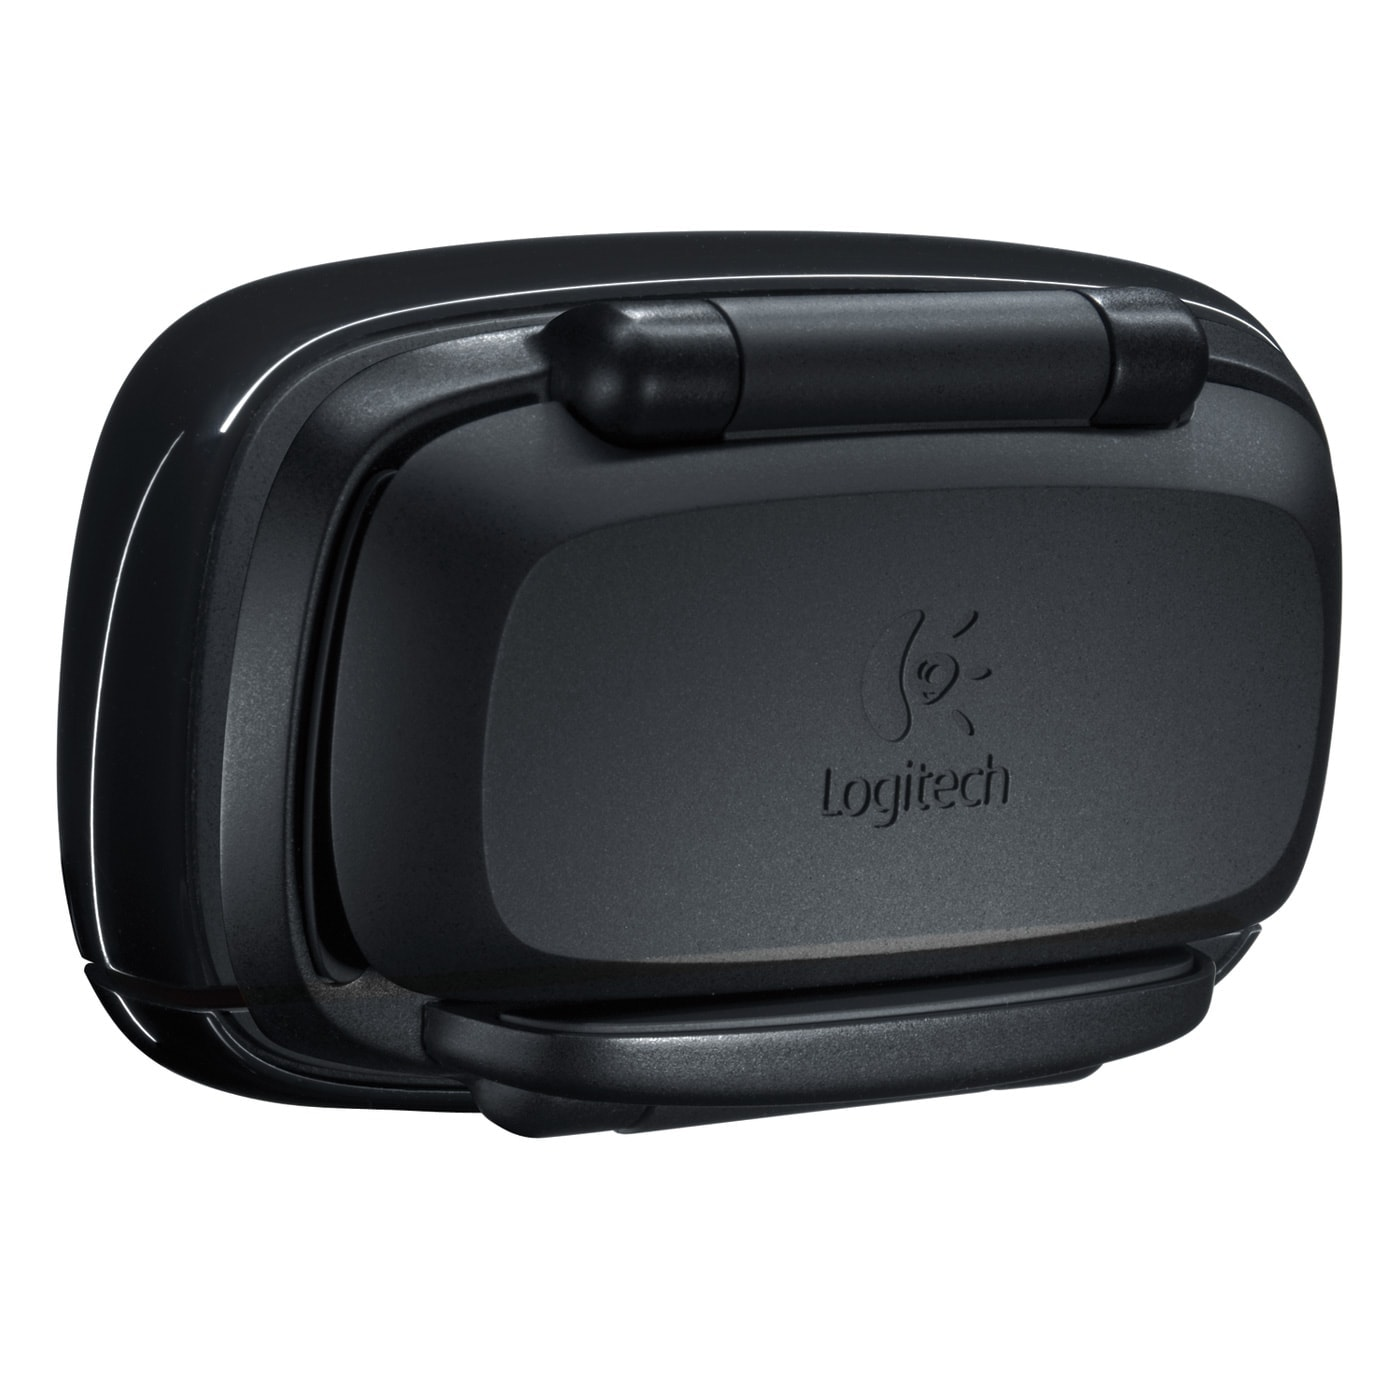 Logitech WebCam C525 Refresh (960-001064) - Achat / Vente Caméra / Webcam sur Cybertek.fr - 1